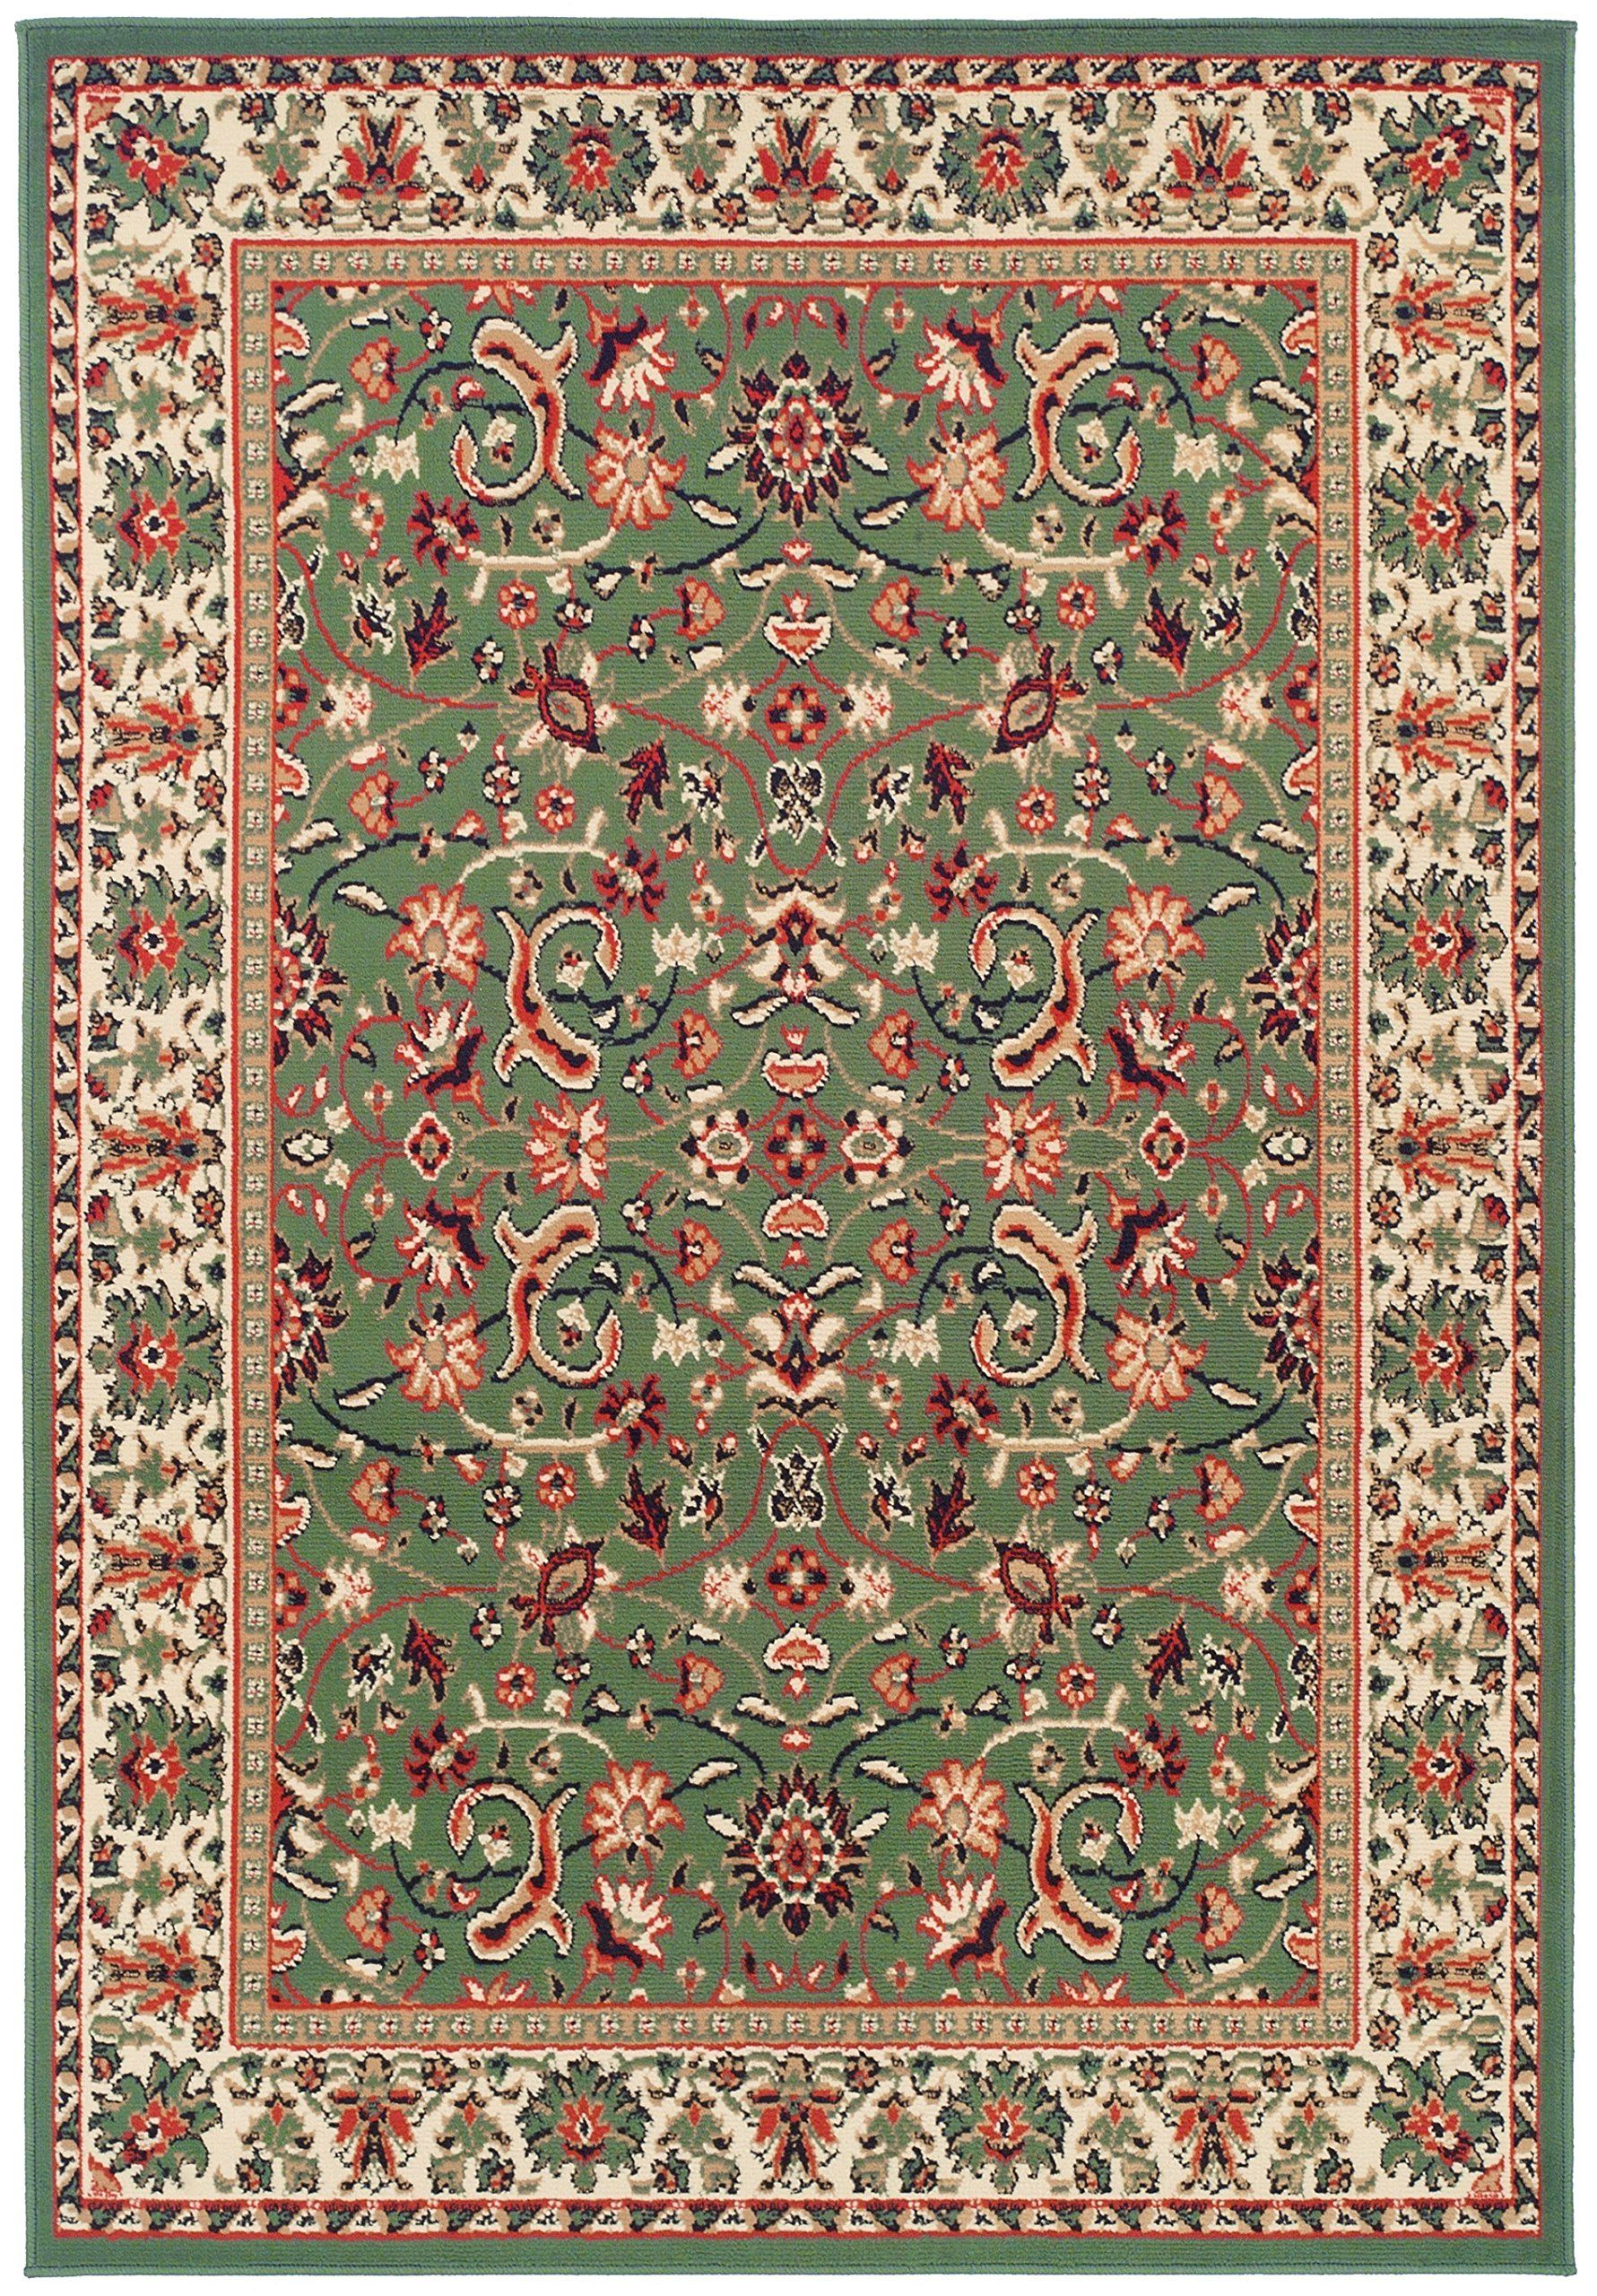 Traditional Area Rugs For Living Room 8x10 Green Large Rugs For